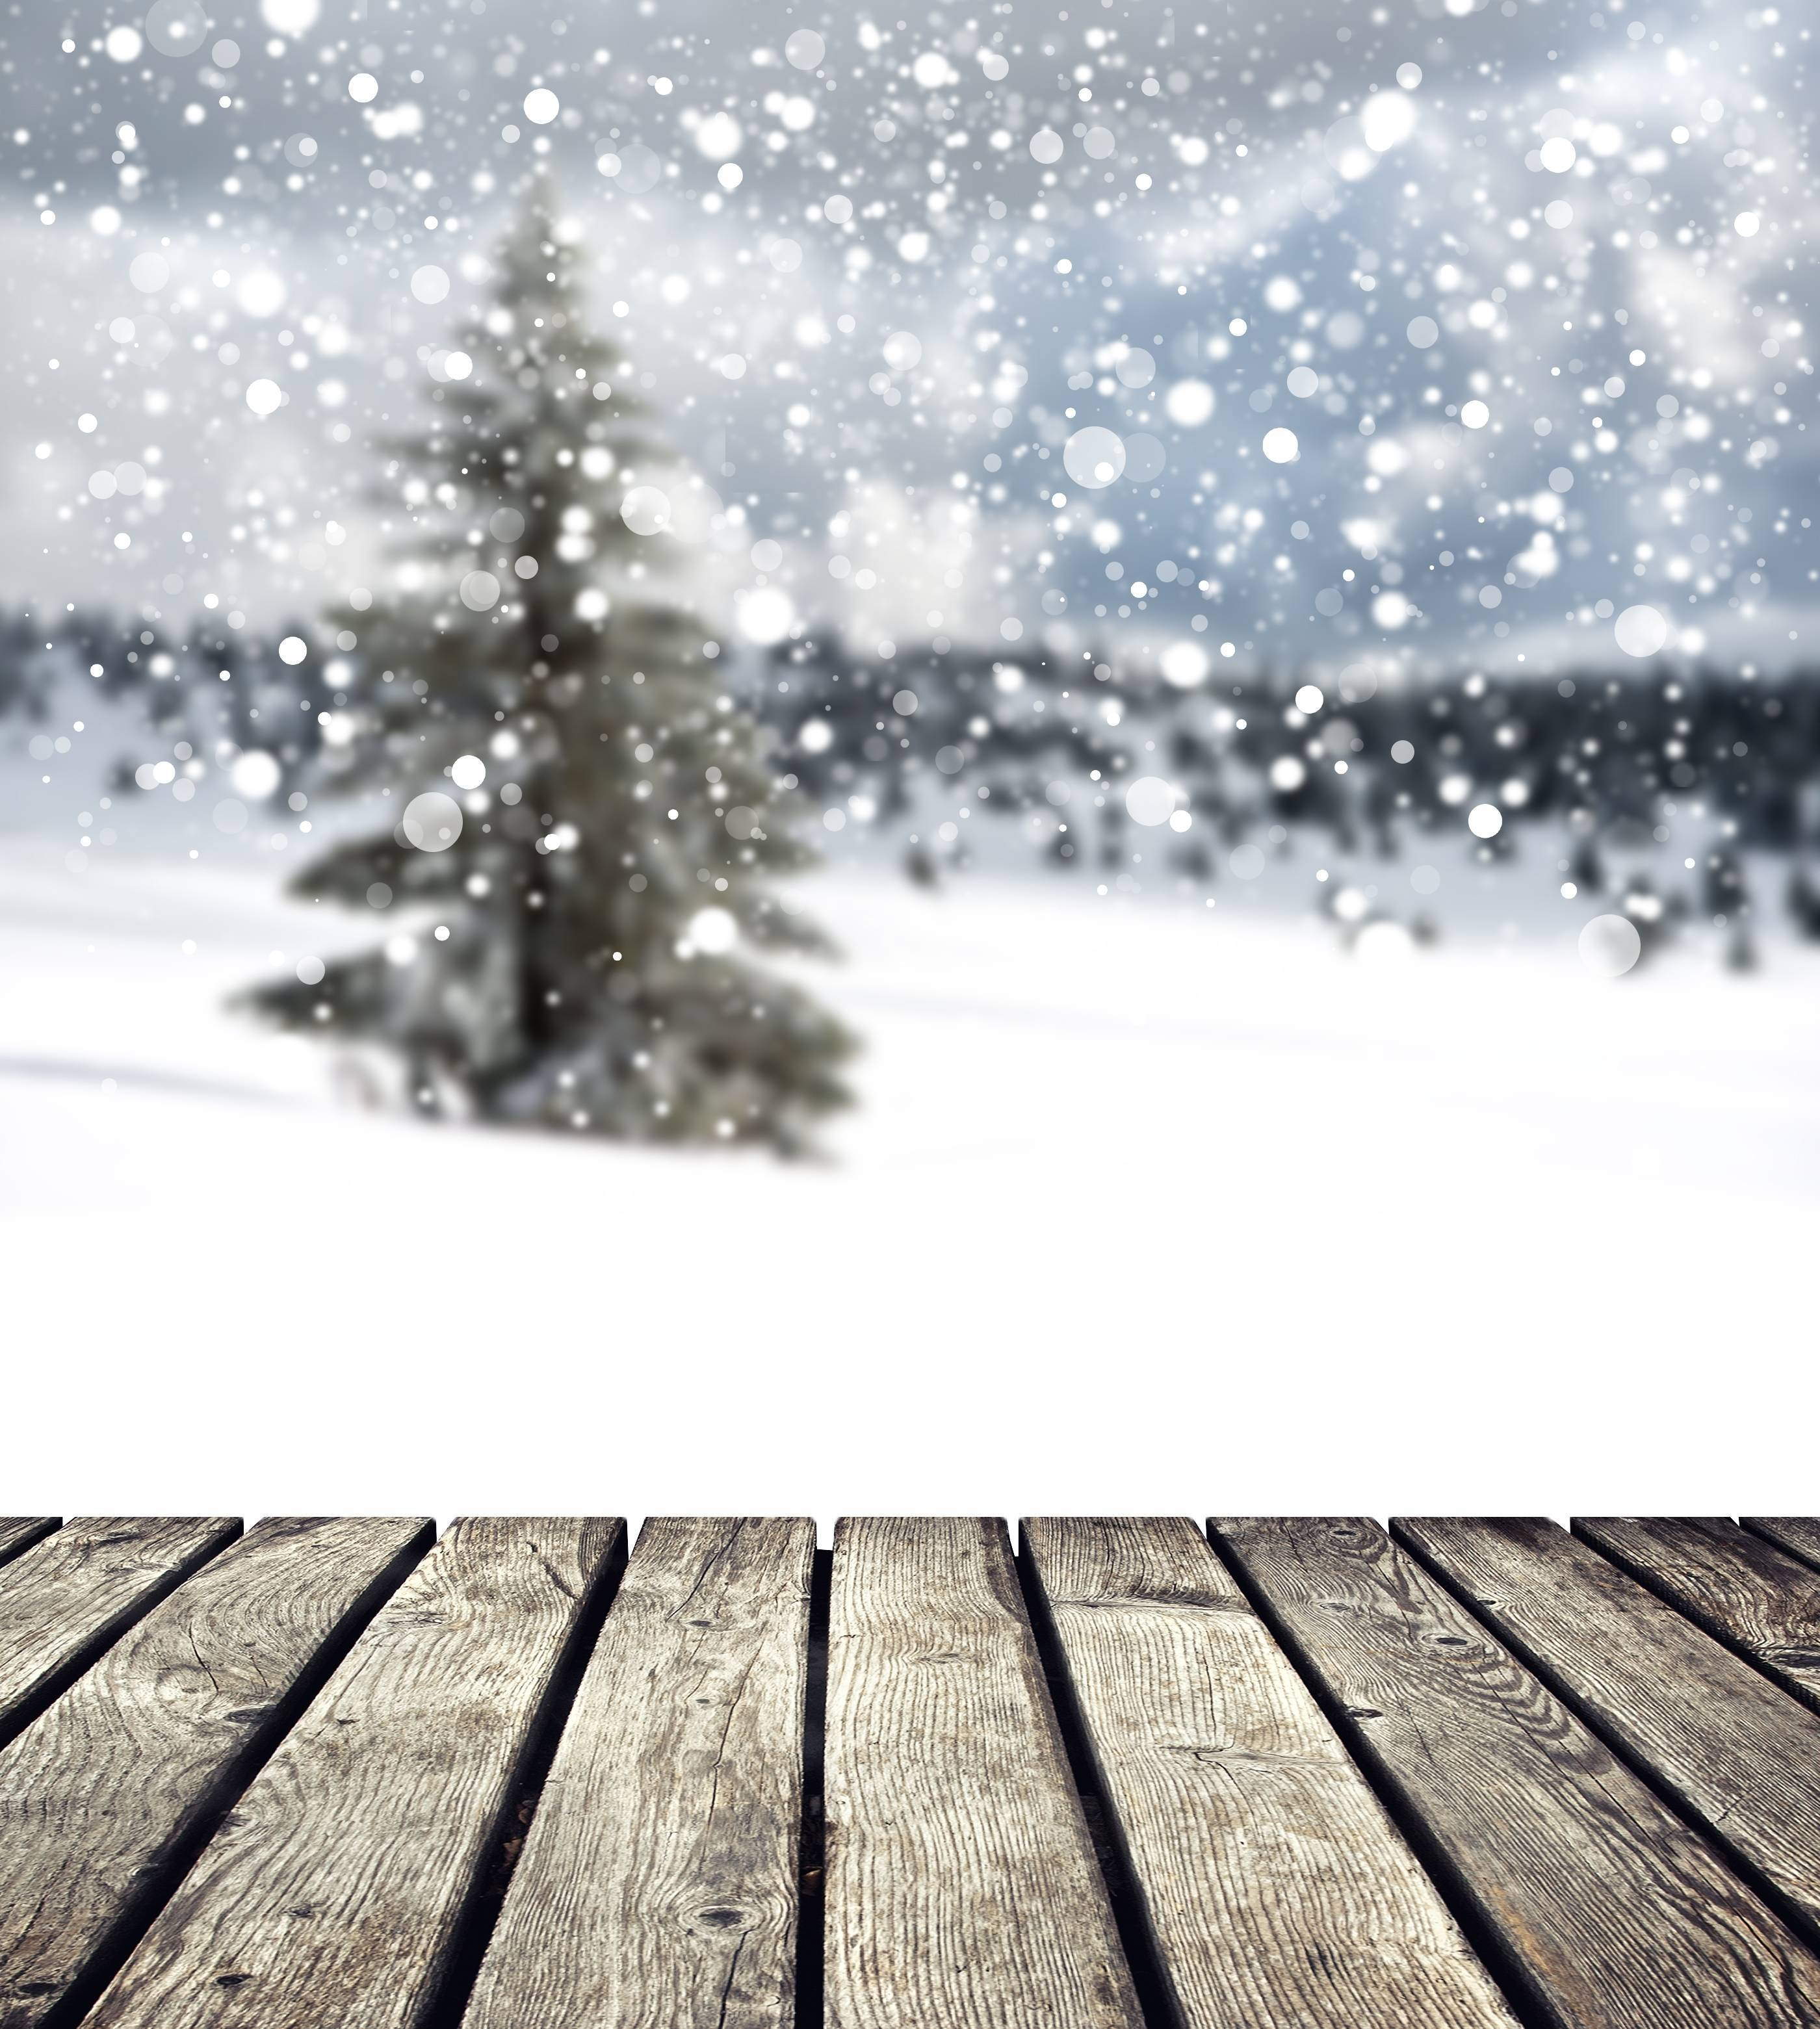 Morris County Weather Alert: Snow on Friday and Weekend